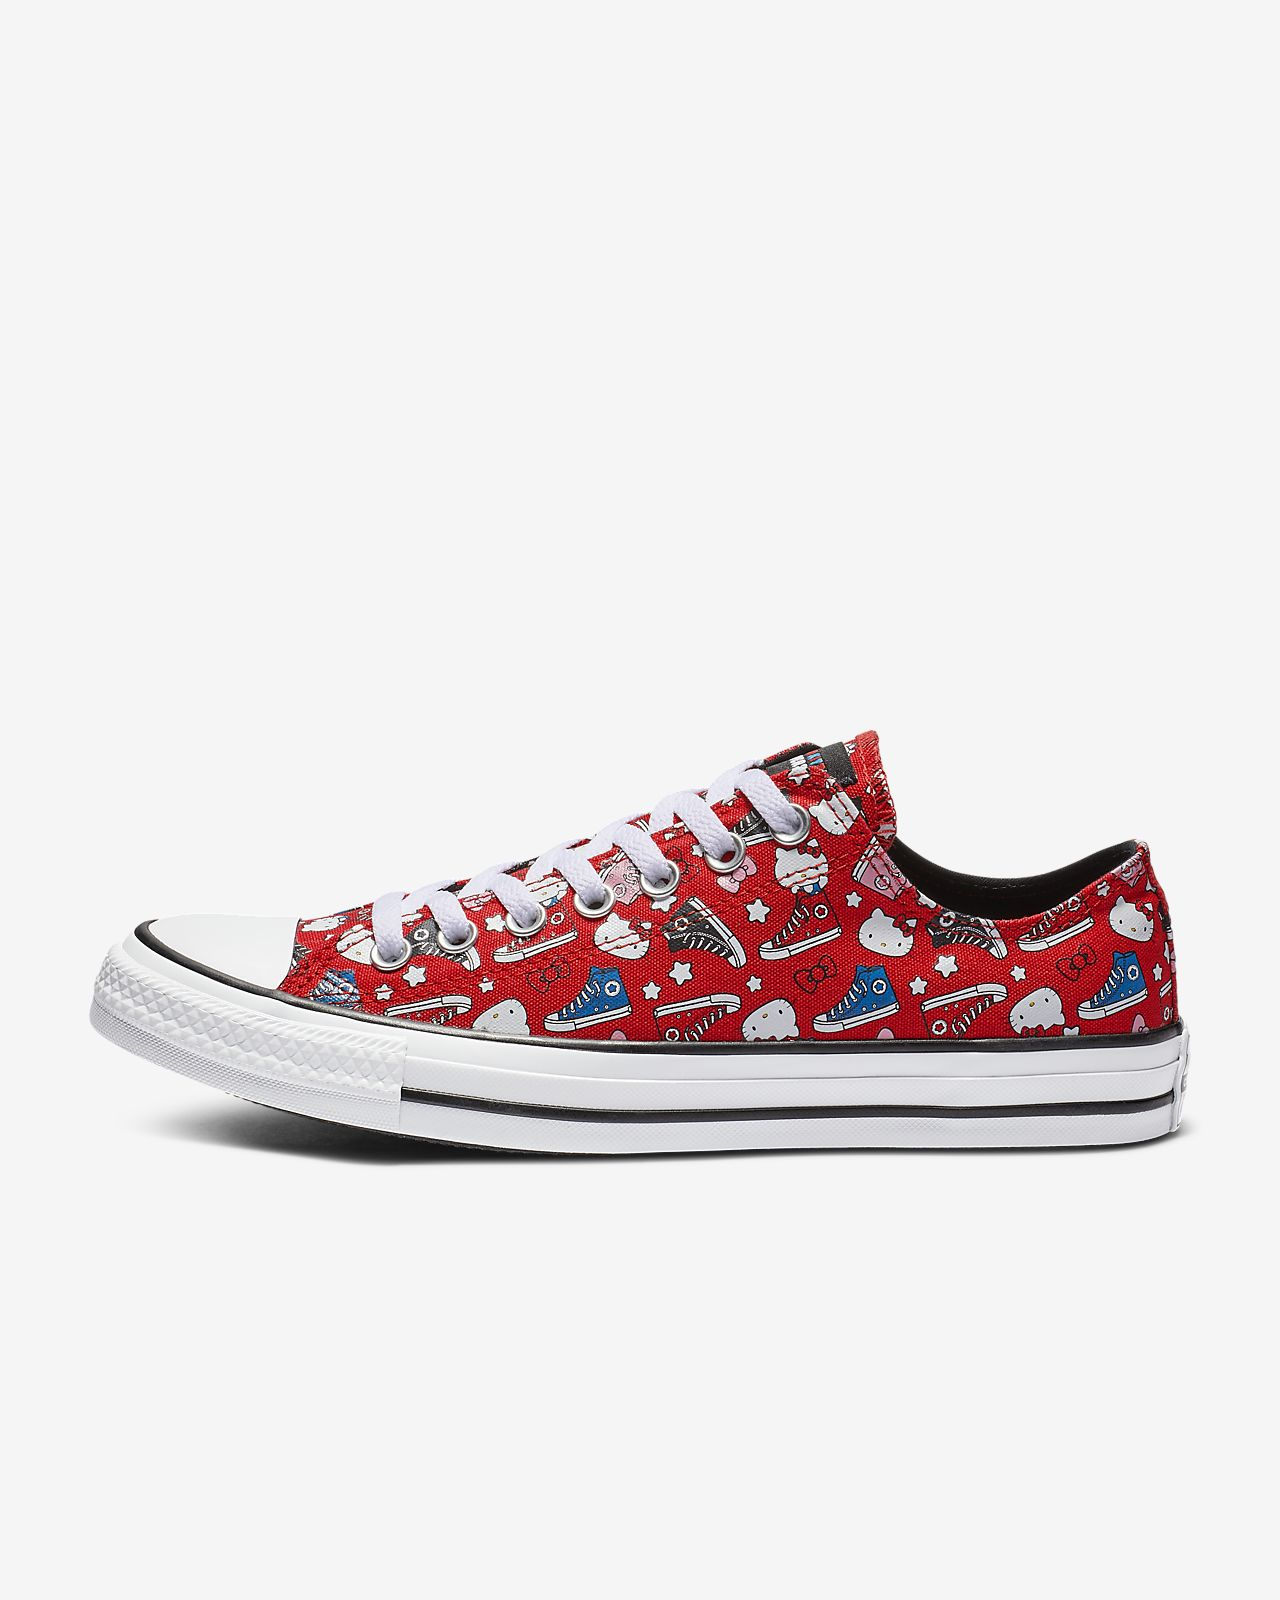 Converse x Hello Kitty Chuck Taylor All Star Low Top  Unisex Shoe